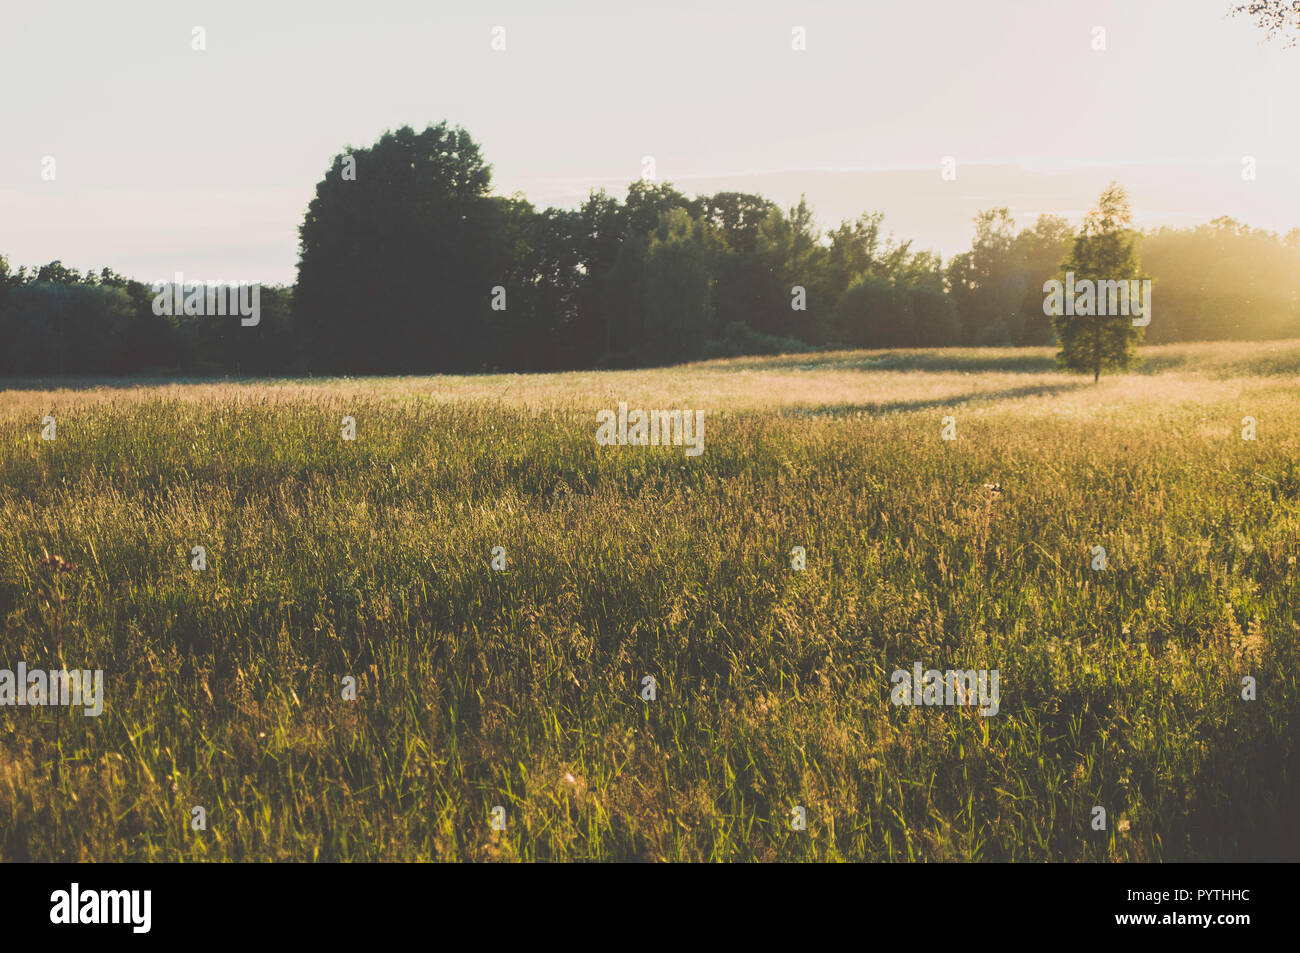 Birch in the grass field. Long evening shadows. - Stock Image